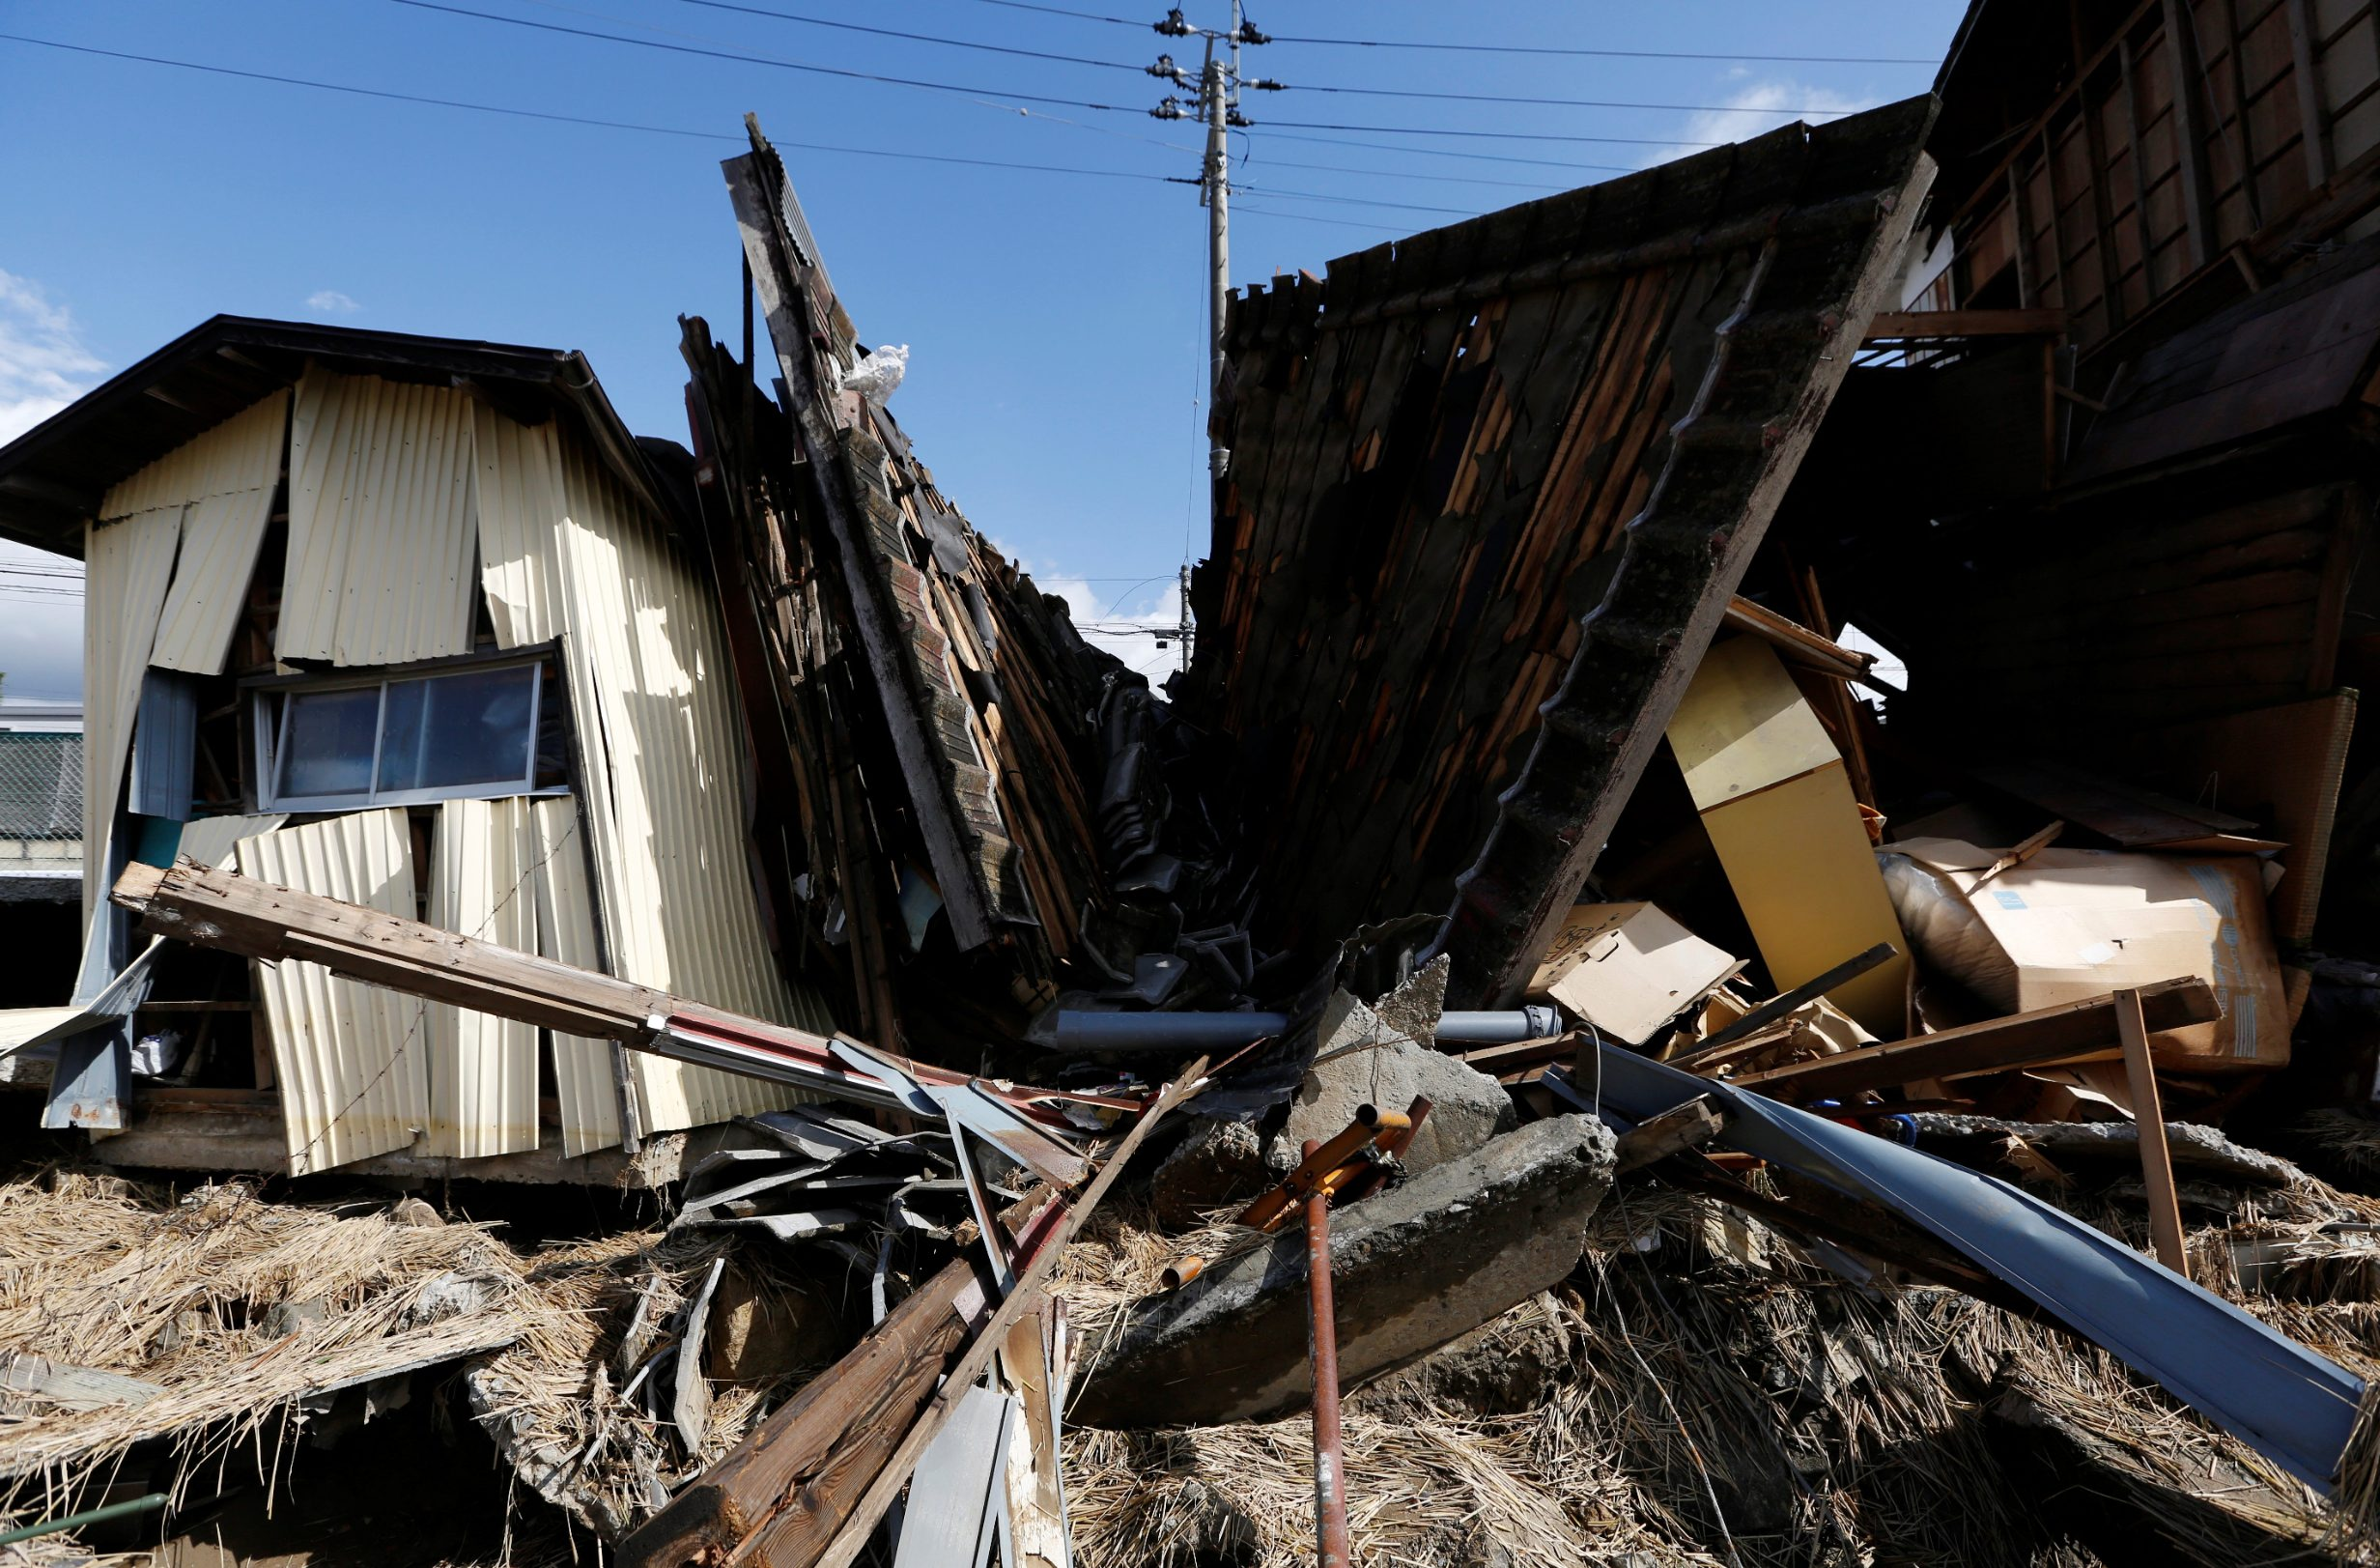 Destroyed houses are seen, in the aftermath of Typhoon Hagibis, in Koriyama, Fukushima prefecture, Japan October 15, 2019. REUTERS/Soe Zeya Tun